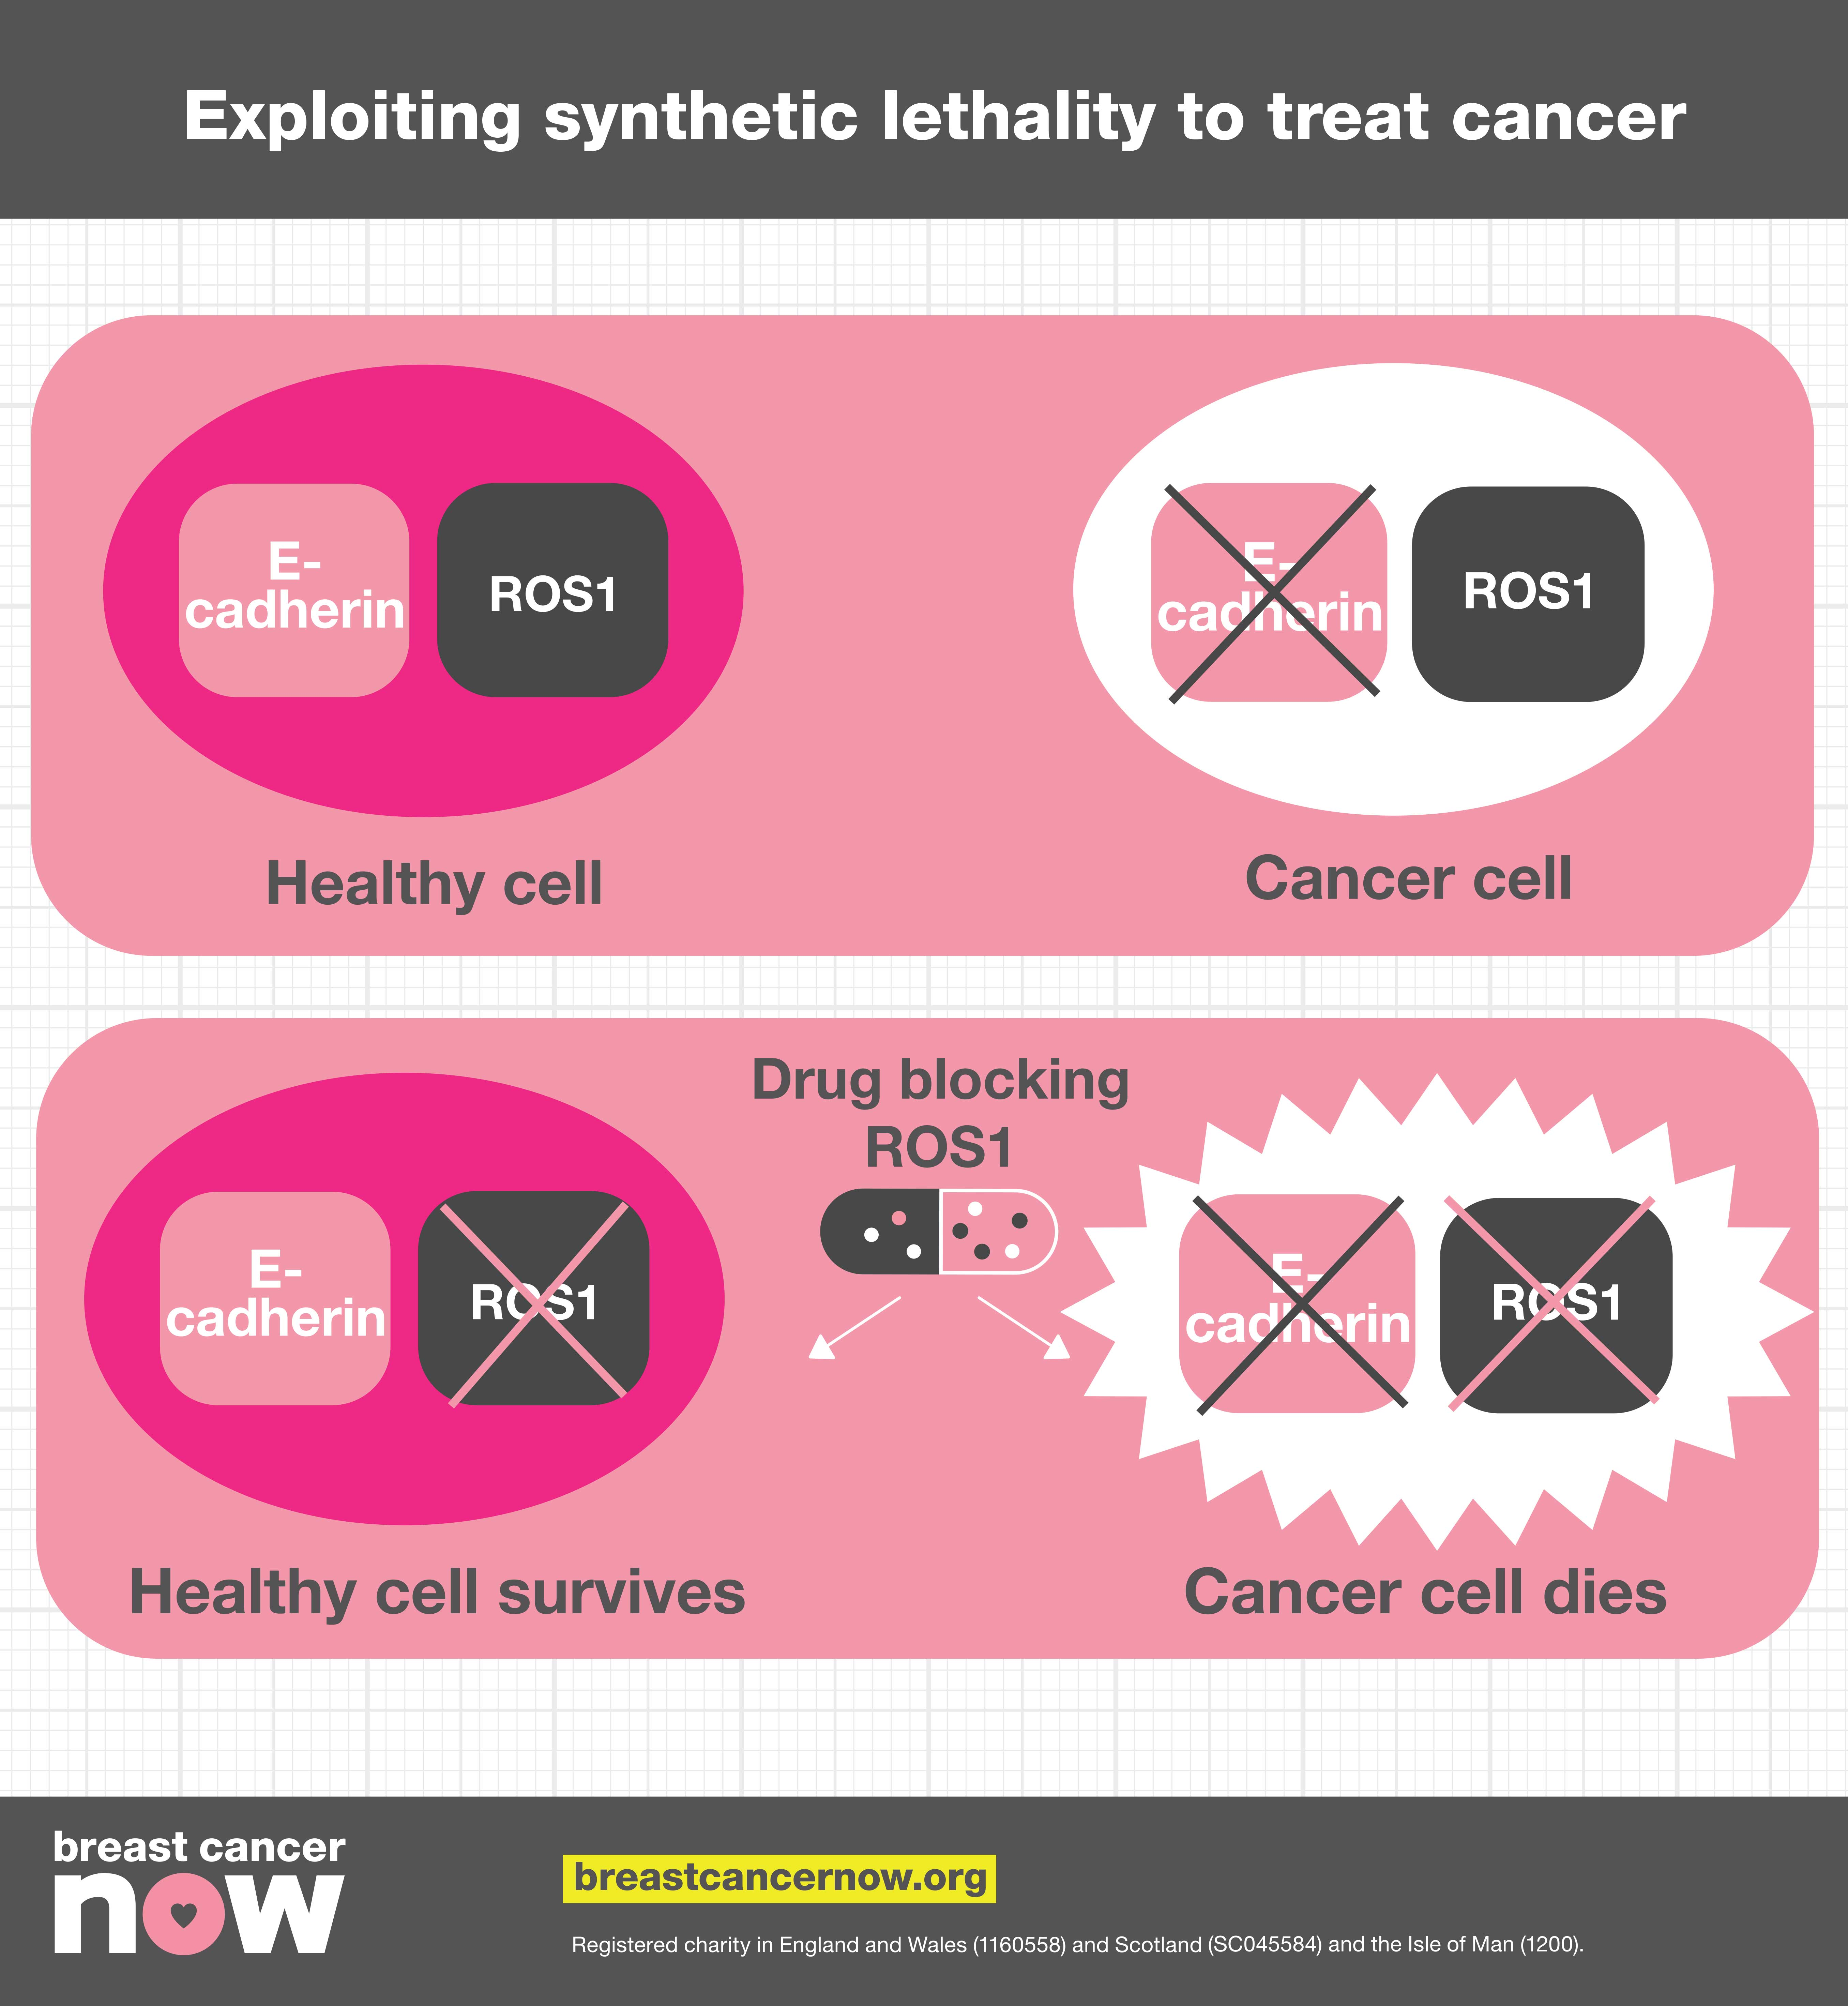 Infographic explaining exploiting synthetic lethality to treat cancer